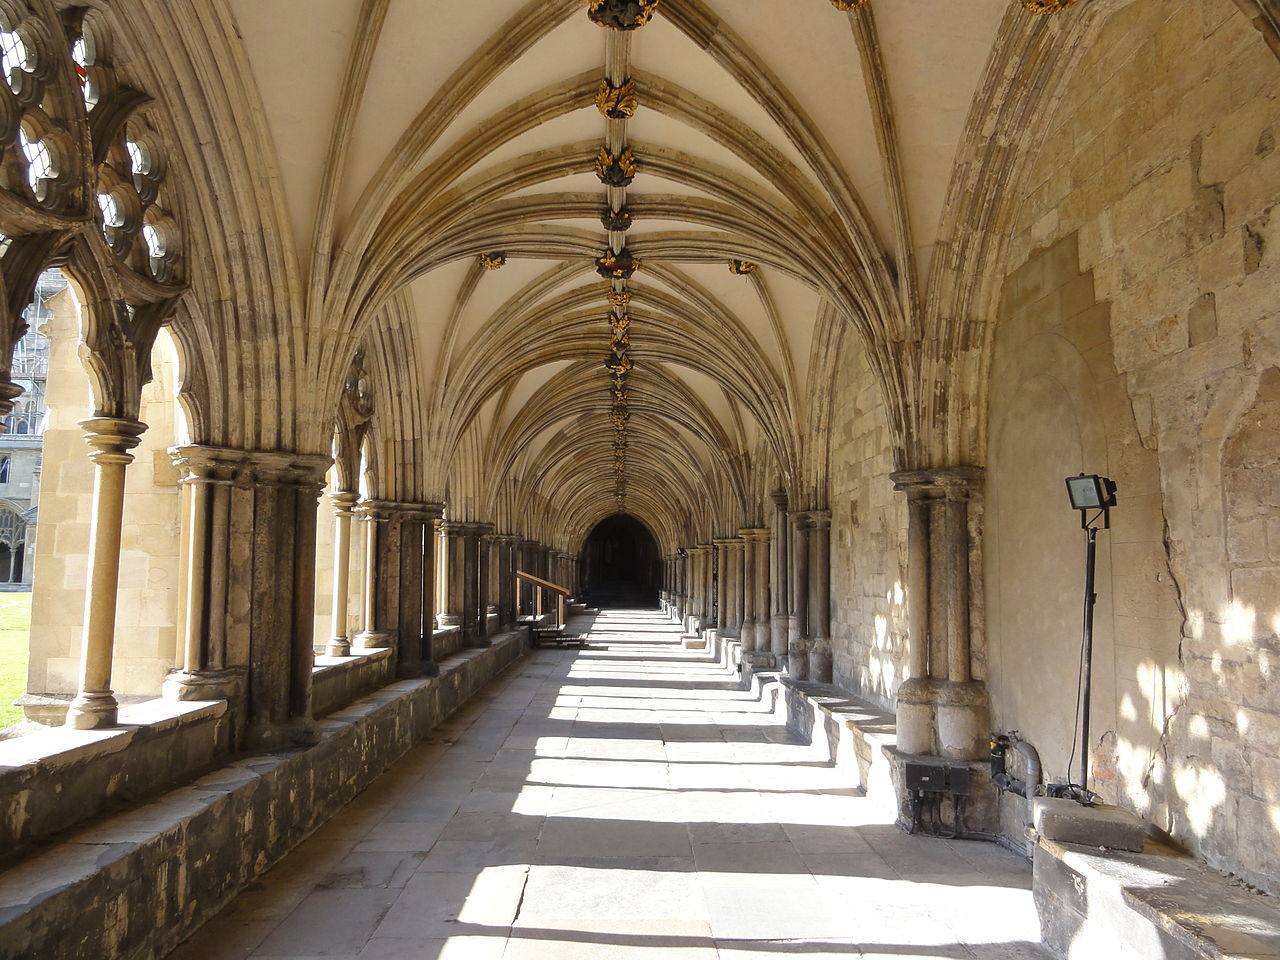 File:Norwich Cathedral cloisters.jpg - Wikimedia Commons